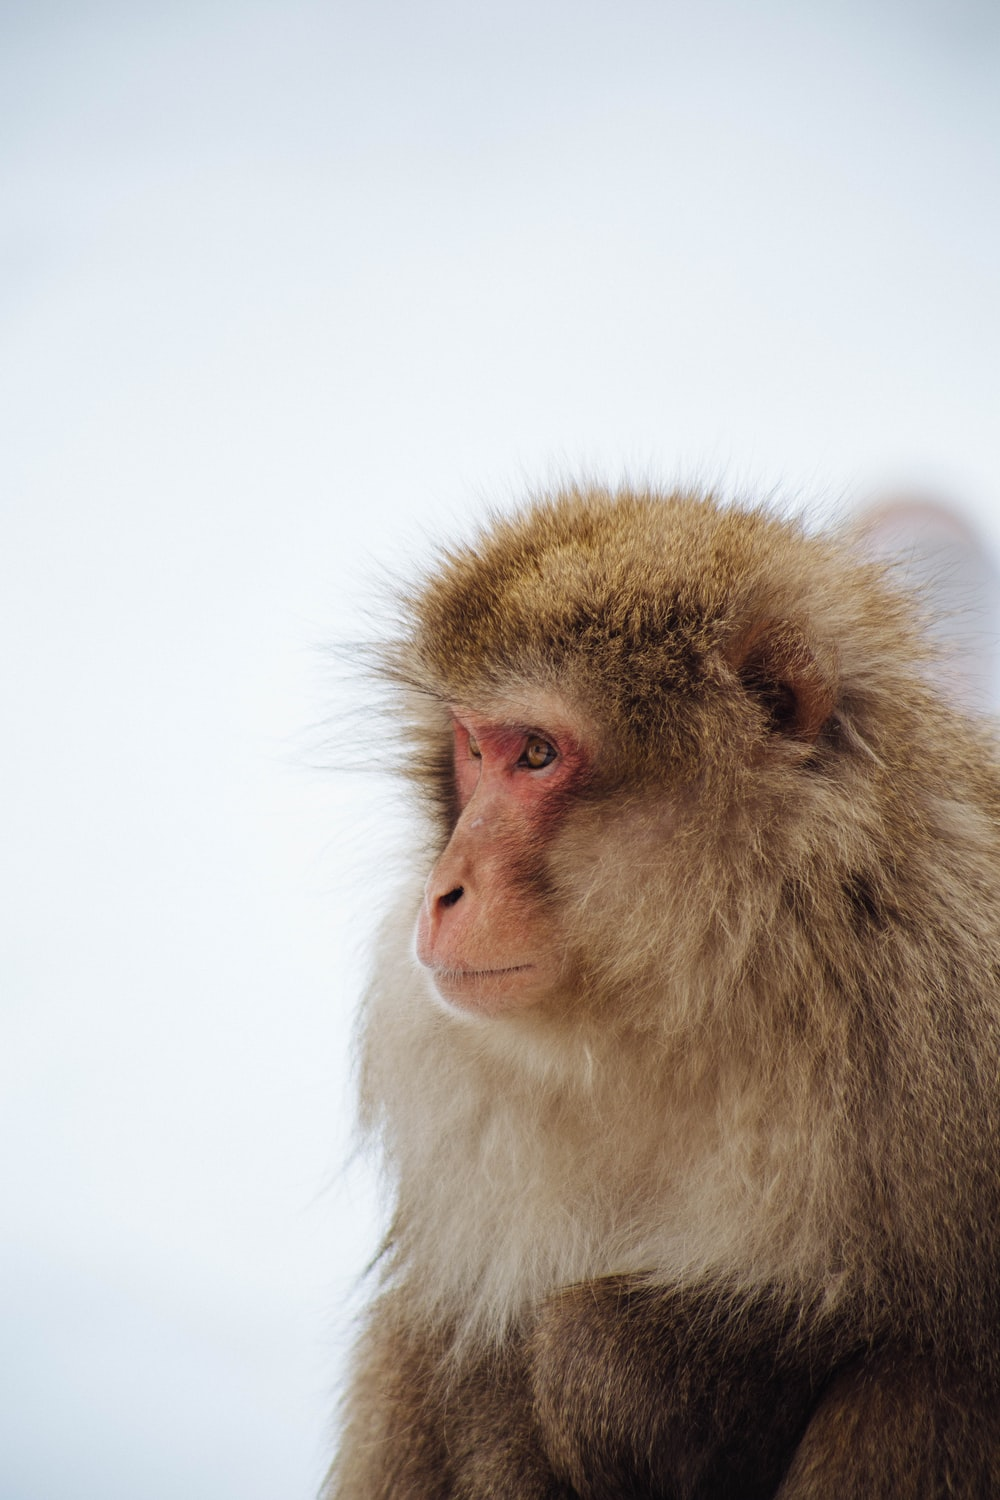 brown monkey on closeup photography